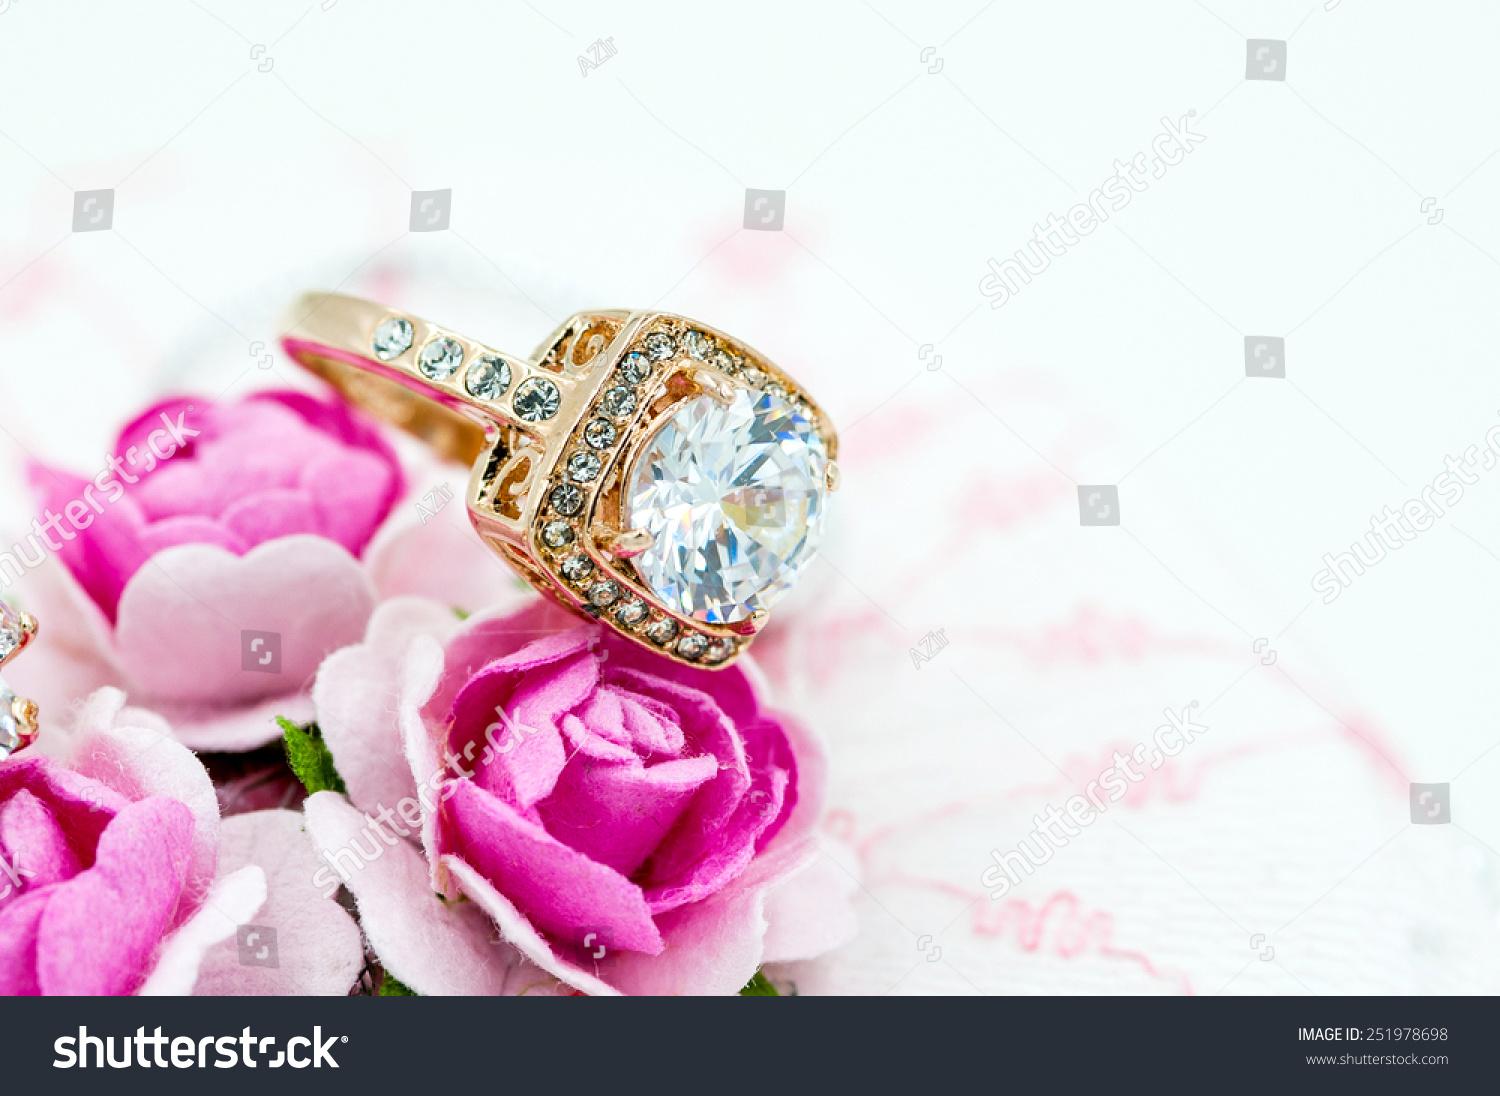 Gold Wedding Rings On Flower Background Stock Photo (Edit Now ...